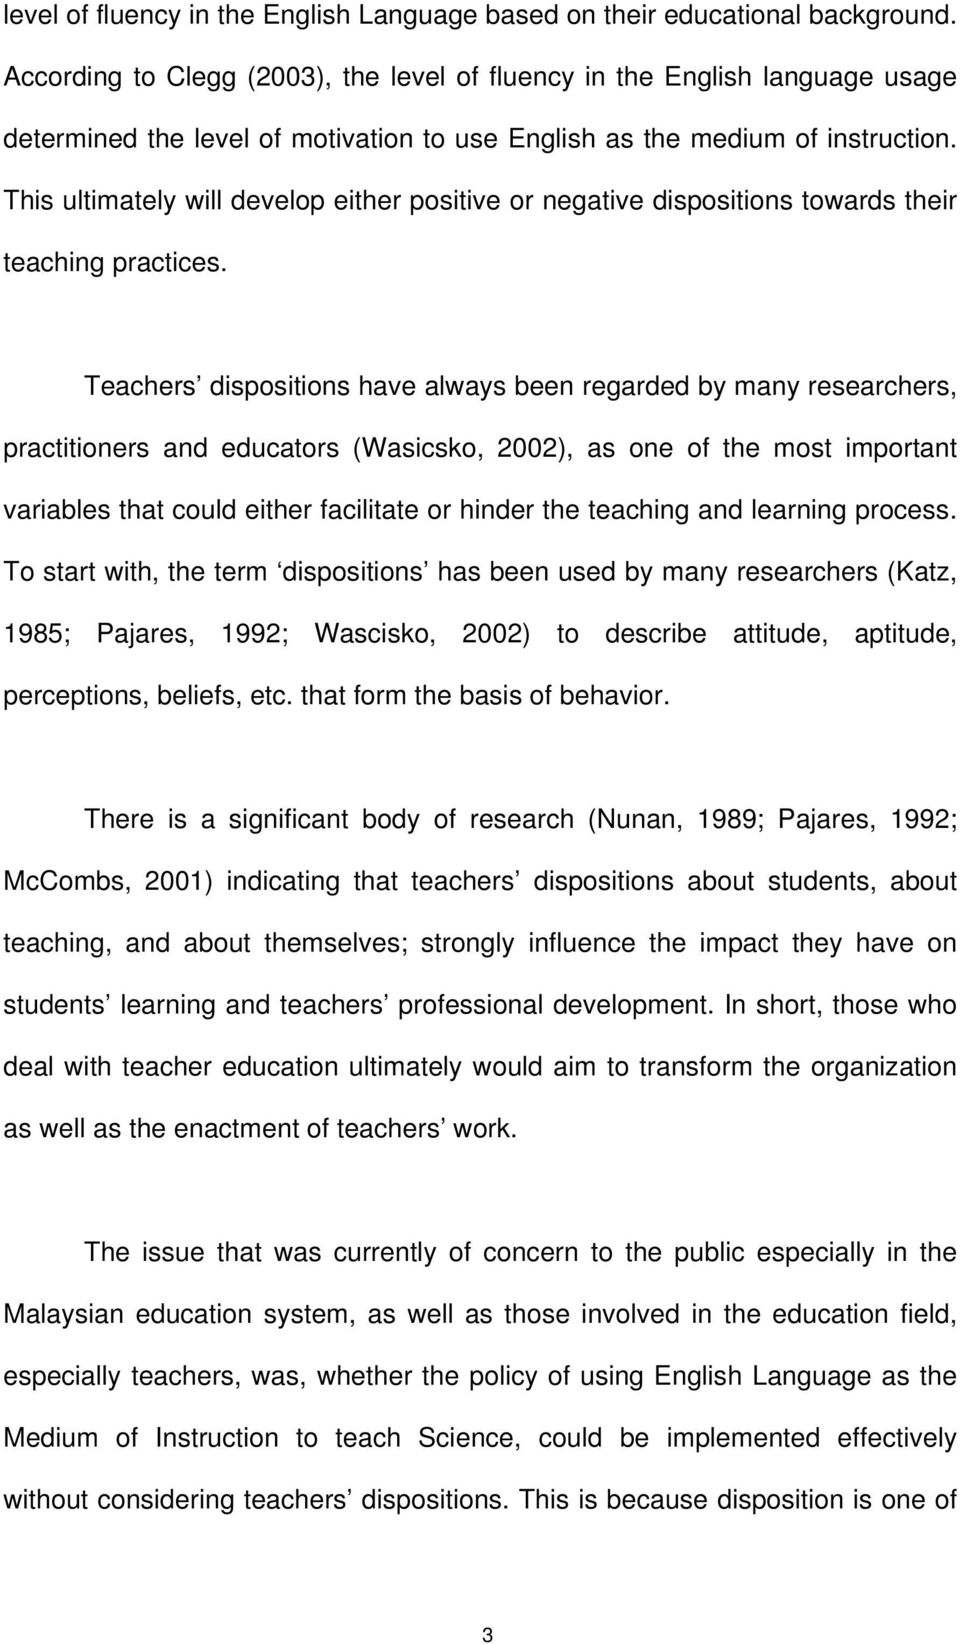 This ultimately will develop either positive or negative dispositions towards their teaching practices.